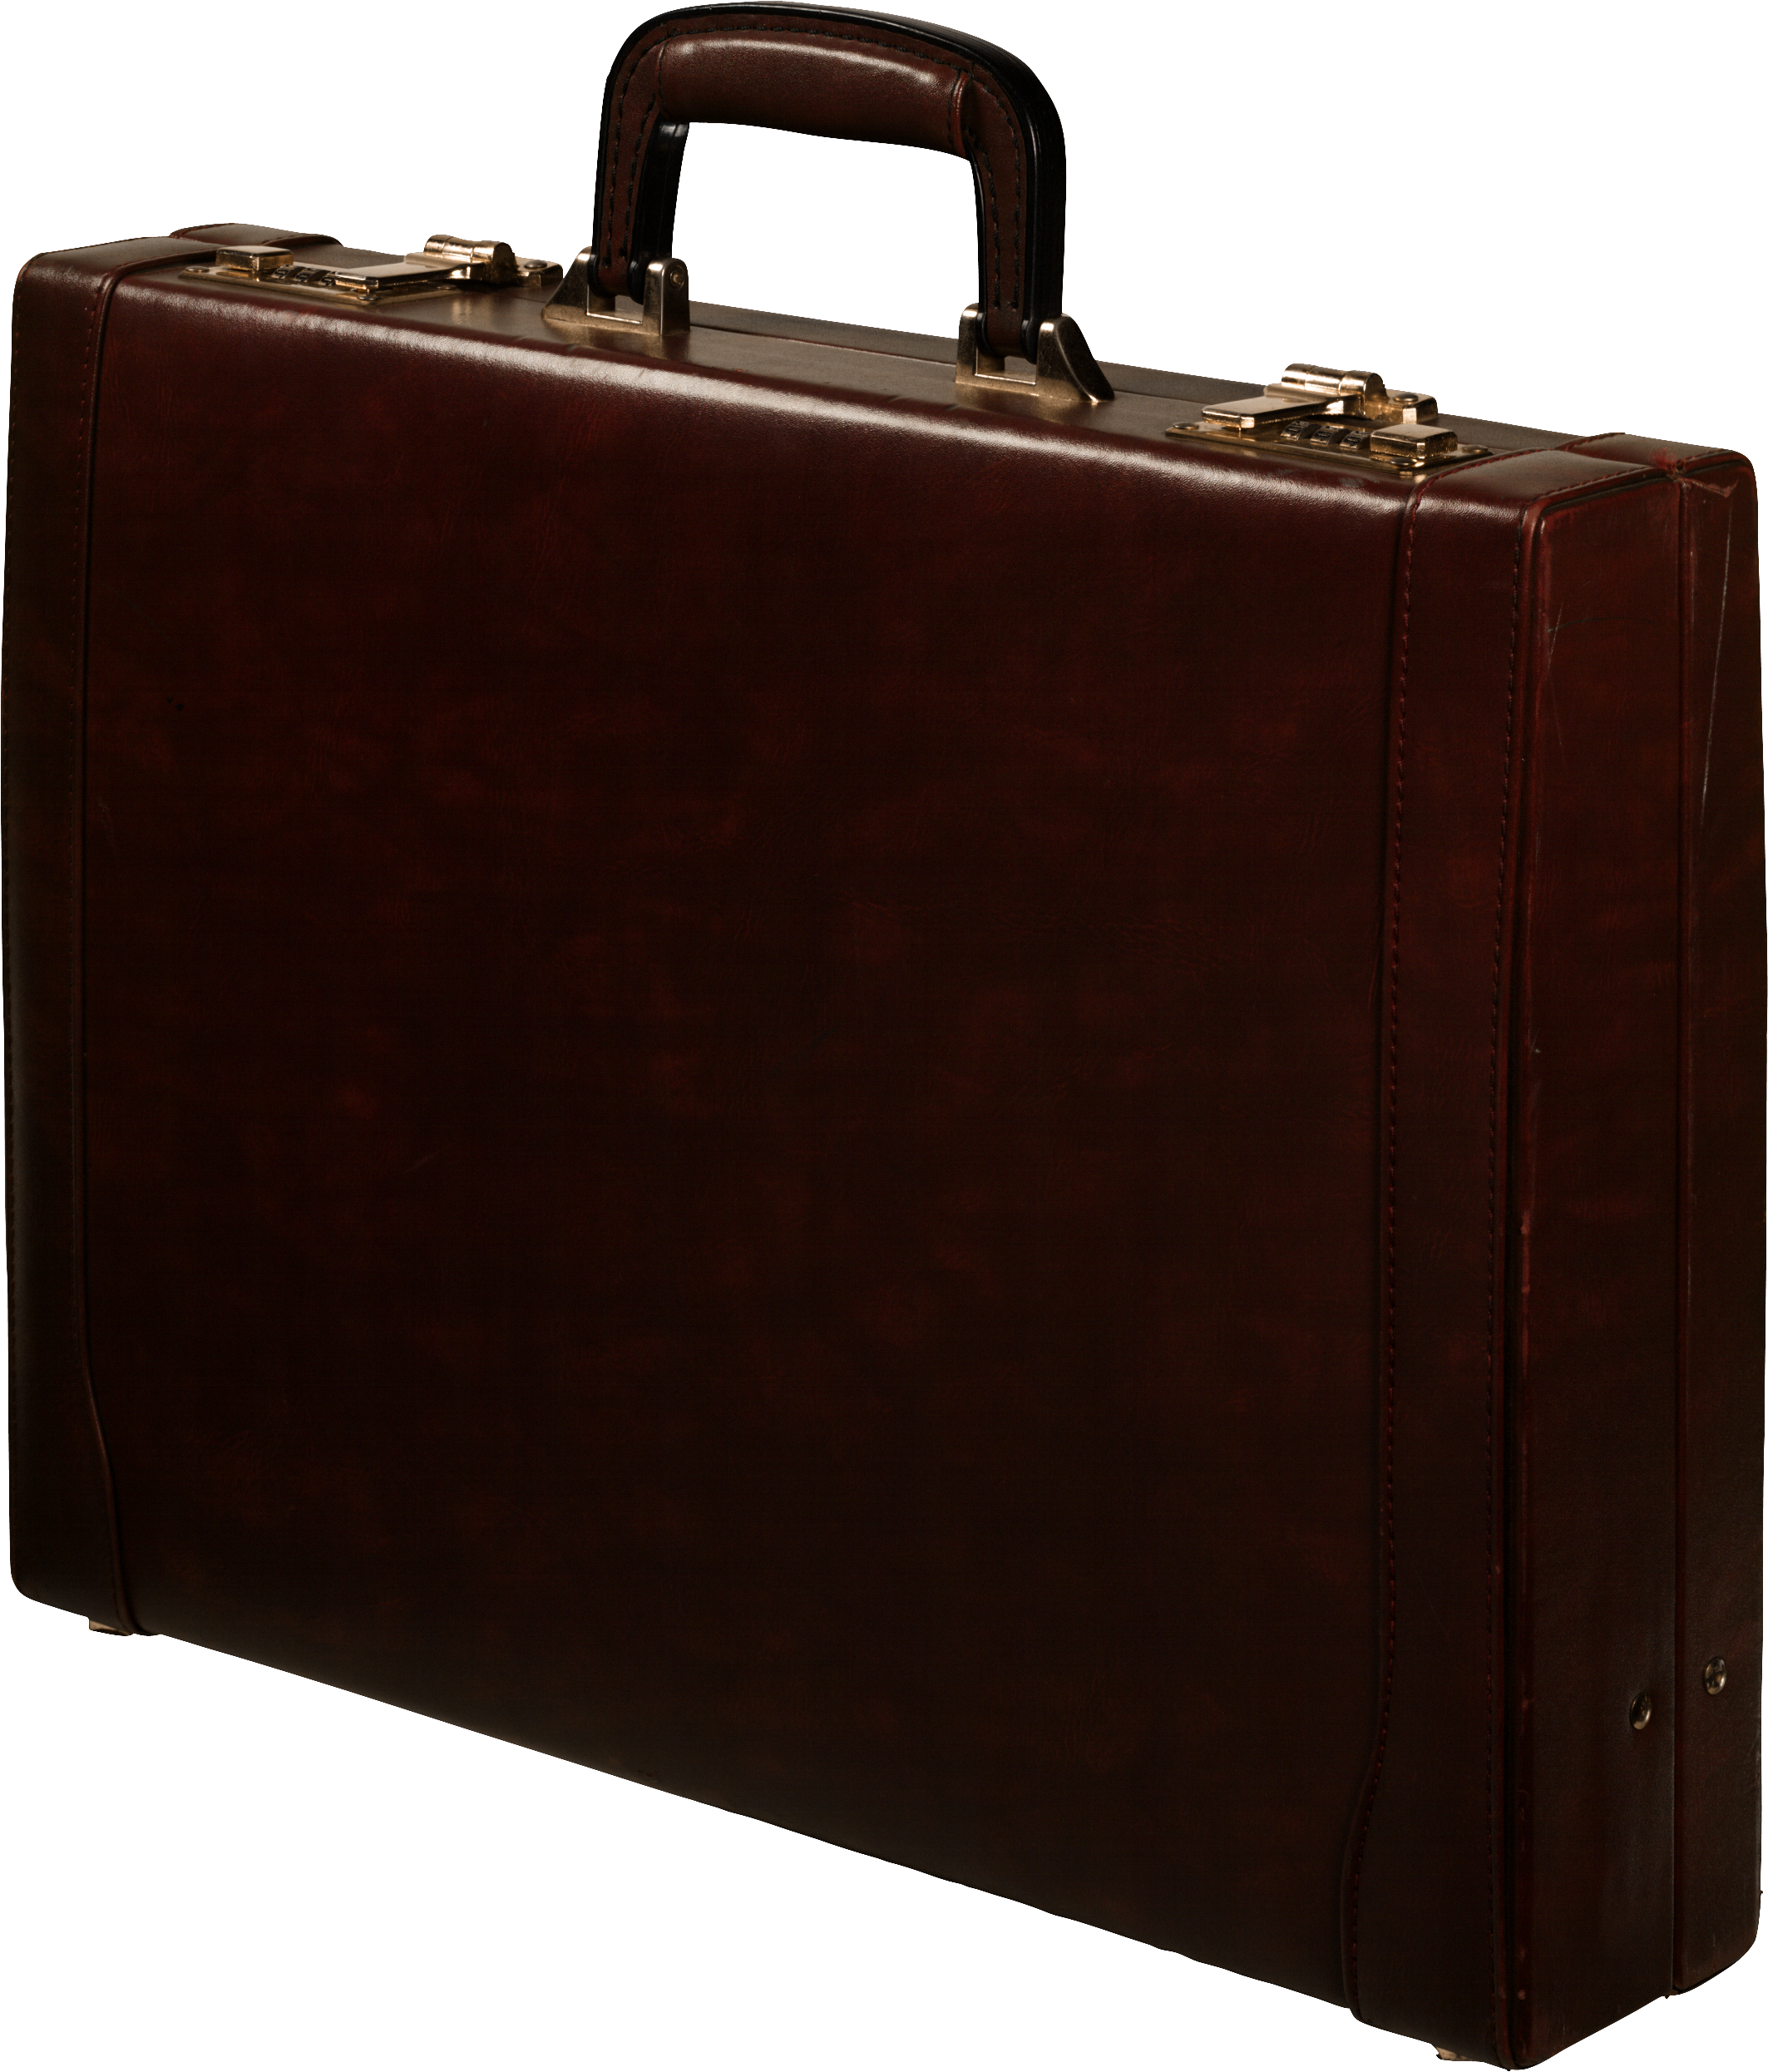 Suitcase photos transparentpng . Luggage clipart briefcase